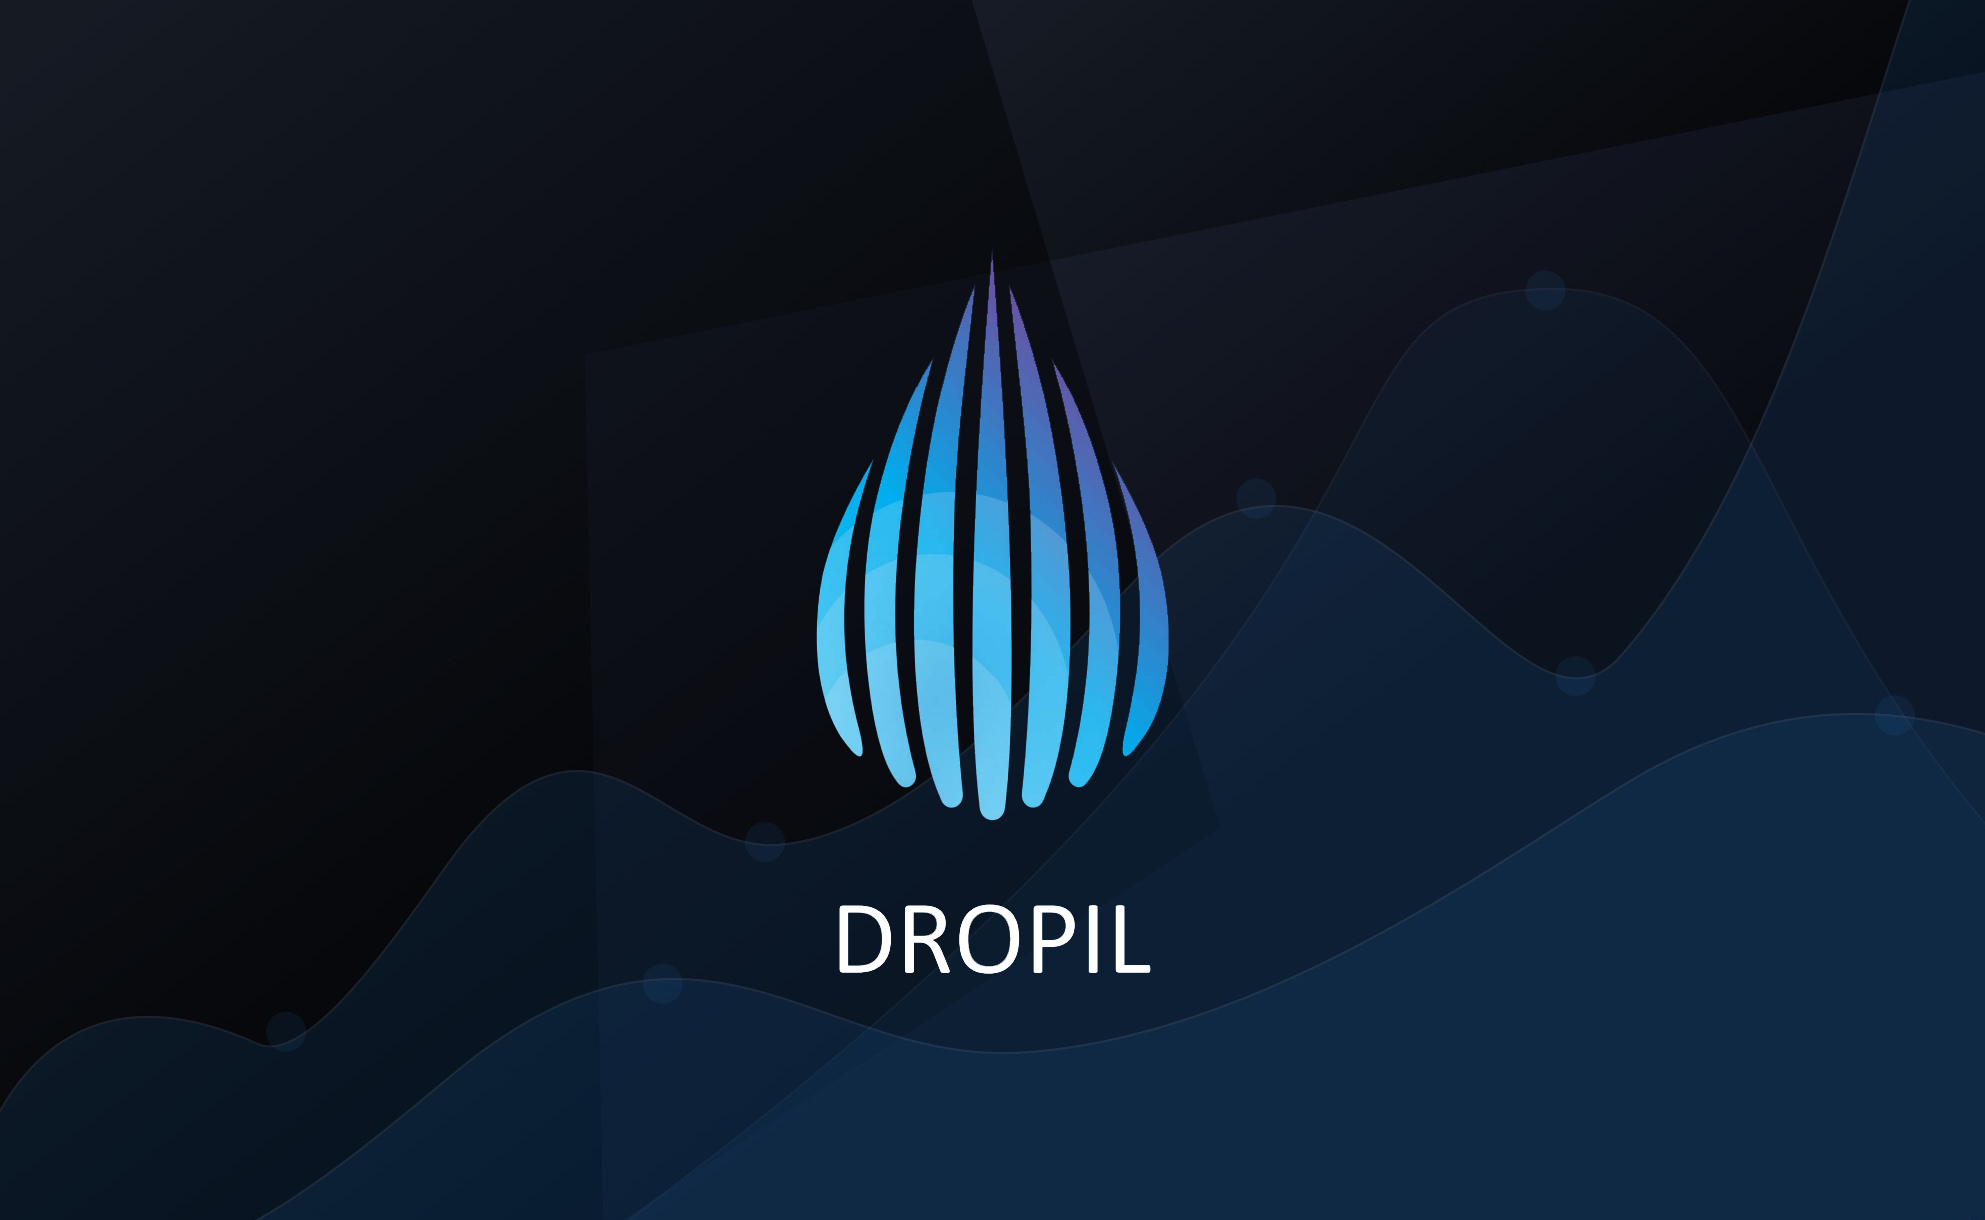 Dropil - earnings of cryptocurrency DROP and analysis of the crypto market